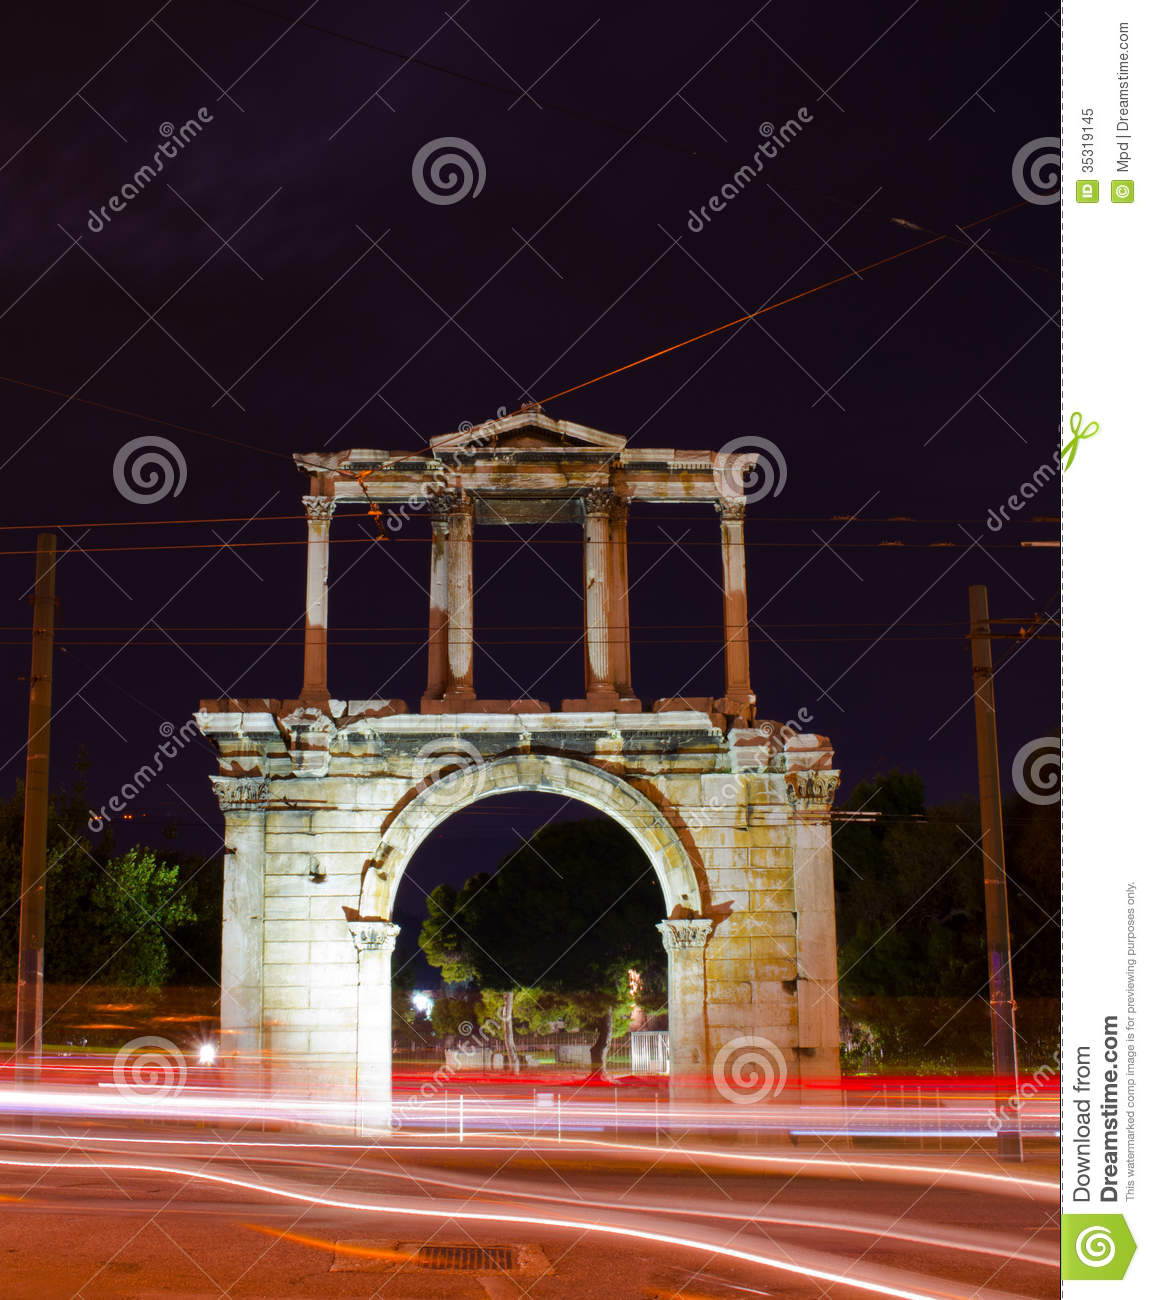 Arch of Hadrian stock image  Image of architecture, culture